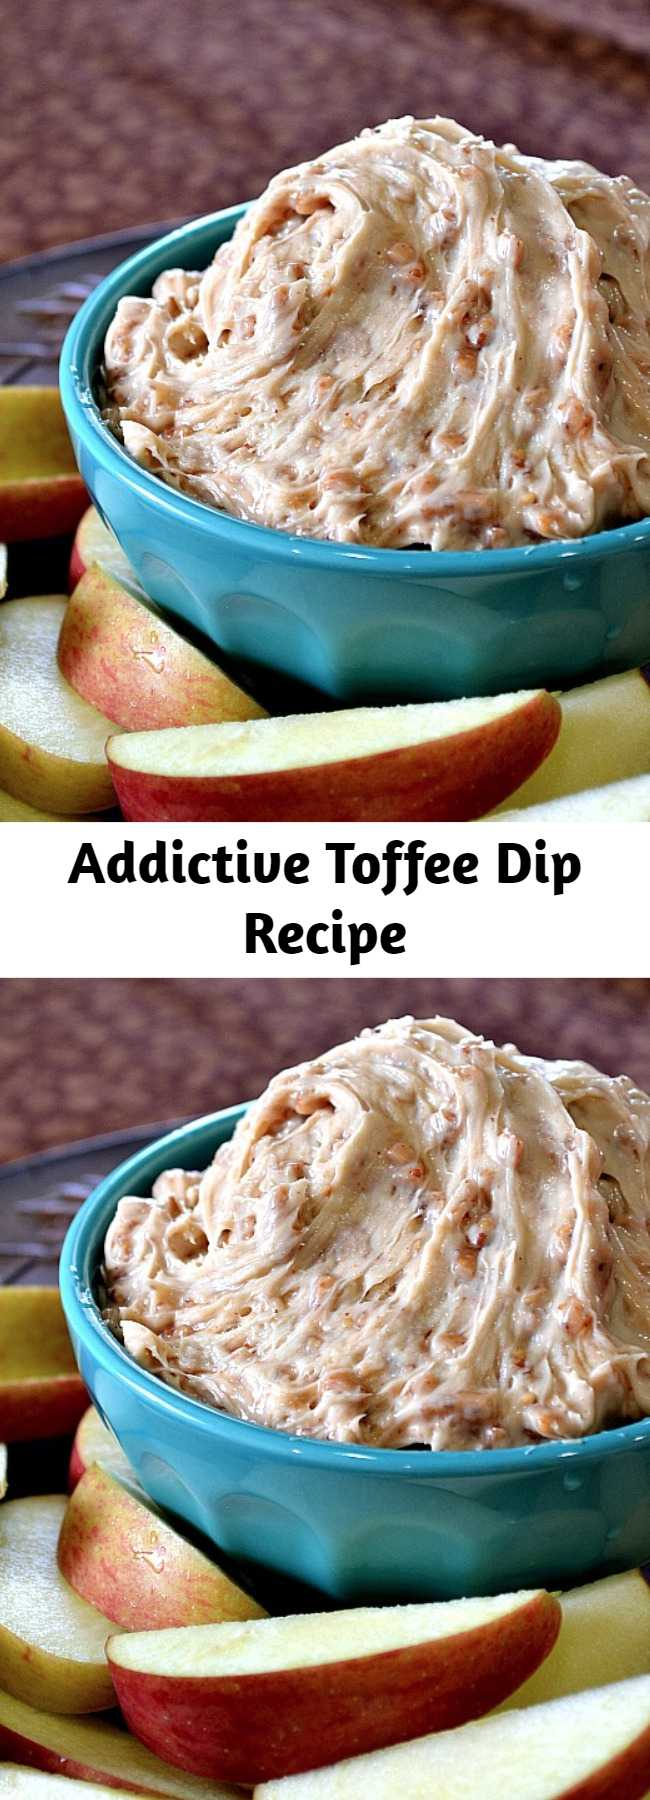 Addictive Toffee Dip Recipe - If your guests love caramel apples then they will LOVE this Toffee Dip! Serve this dip with apple slices. Tastes like a caramel apple without the chewy sticky mess.